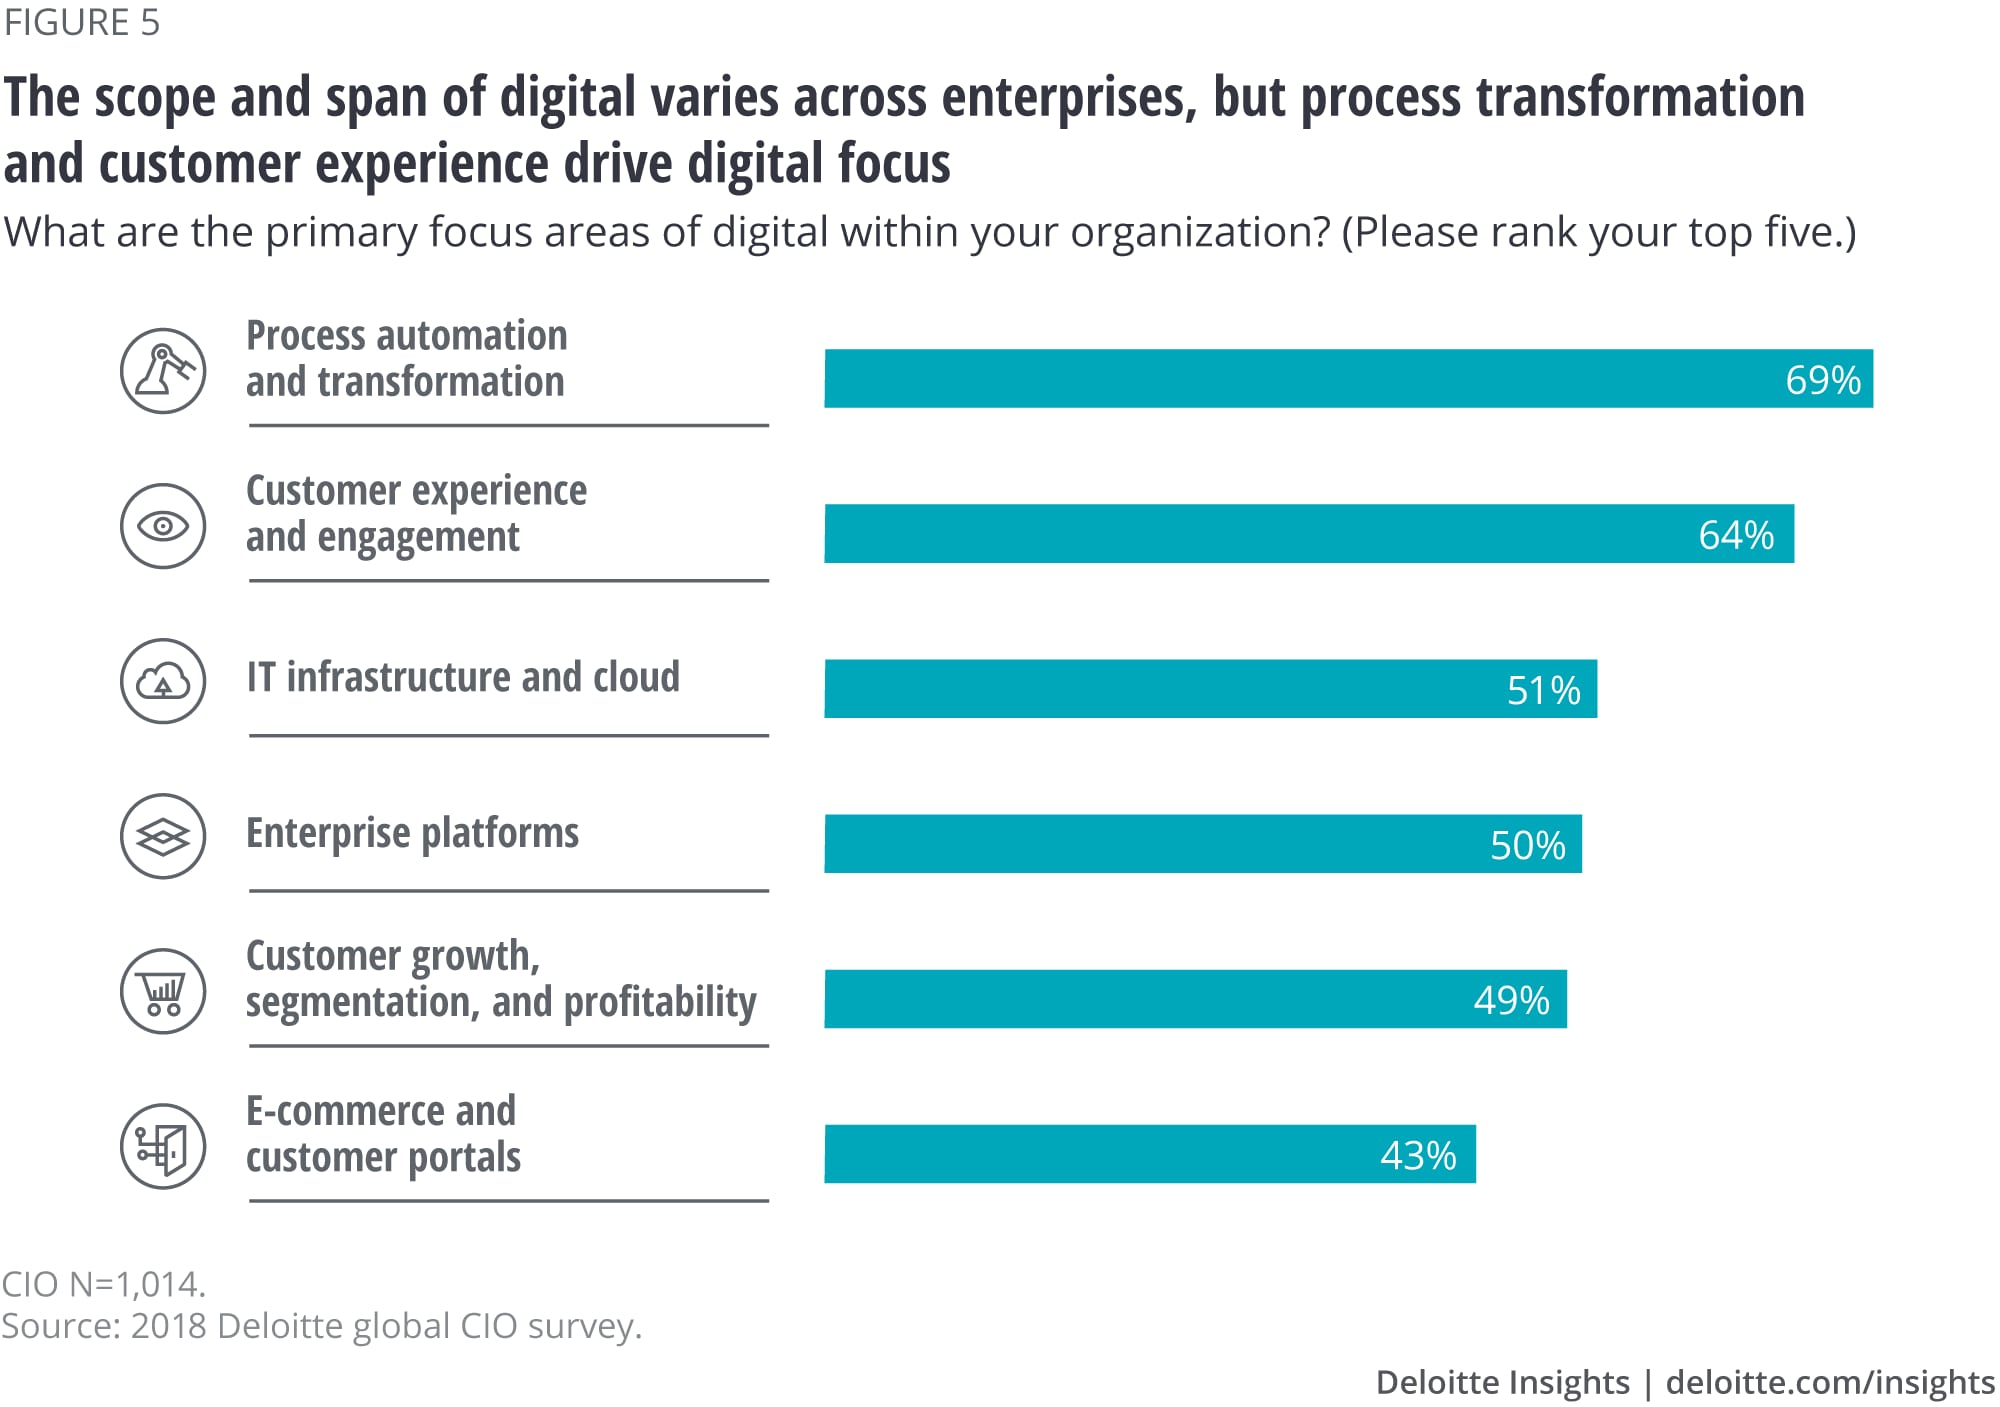 The scope and span of digital varies across enterprises, but process transformation and customer experience drive digital focus